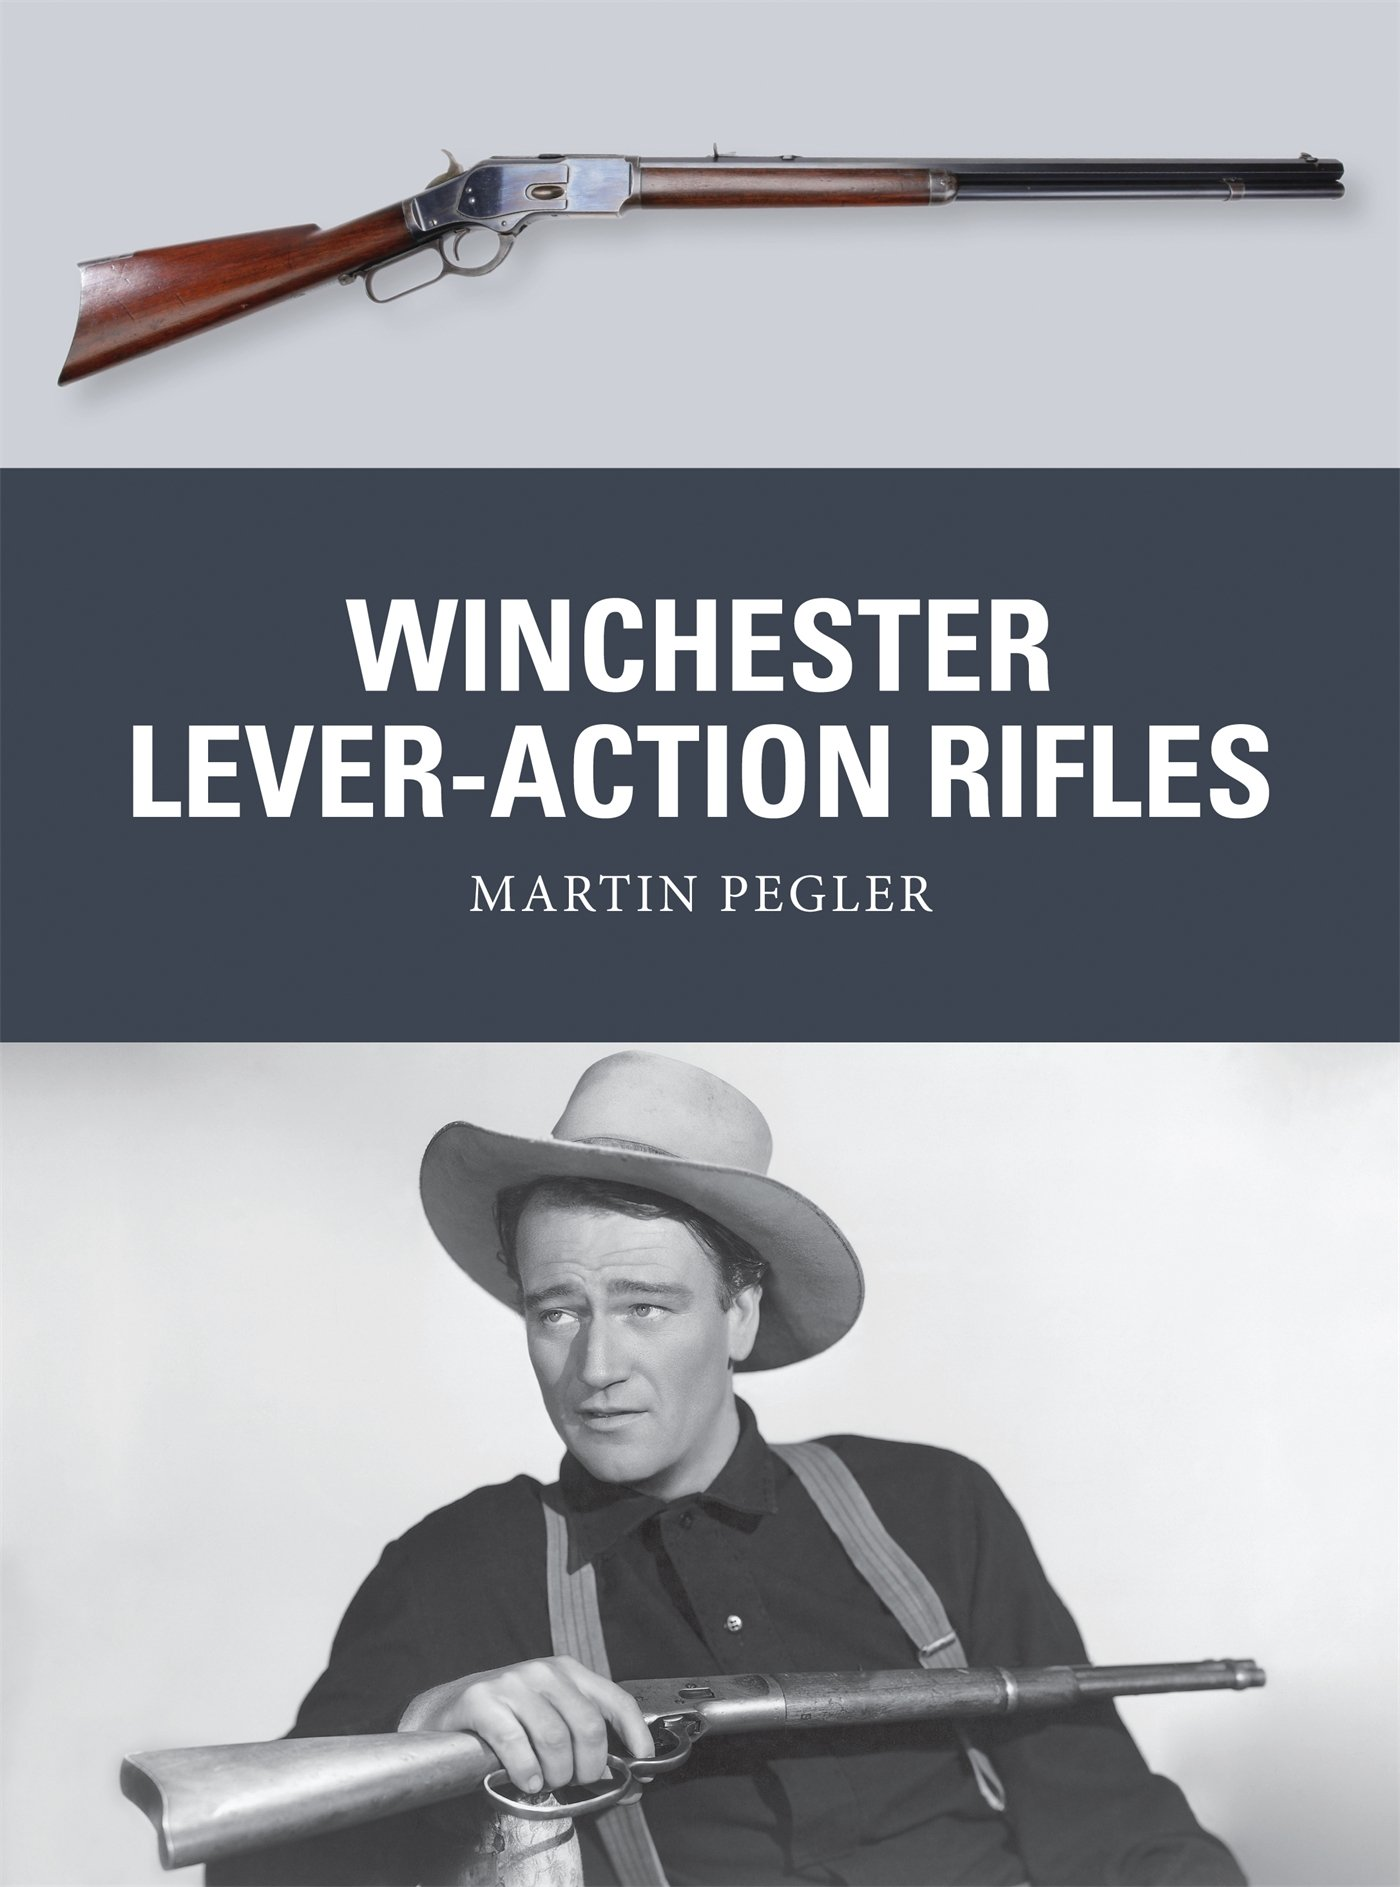 We Analyzed 1,285 Reviews To Find THE BEST Winchester Rifle